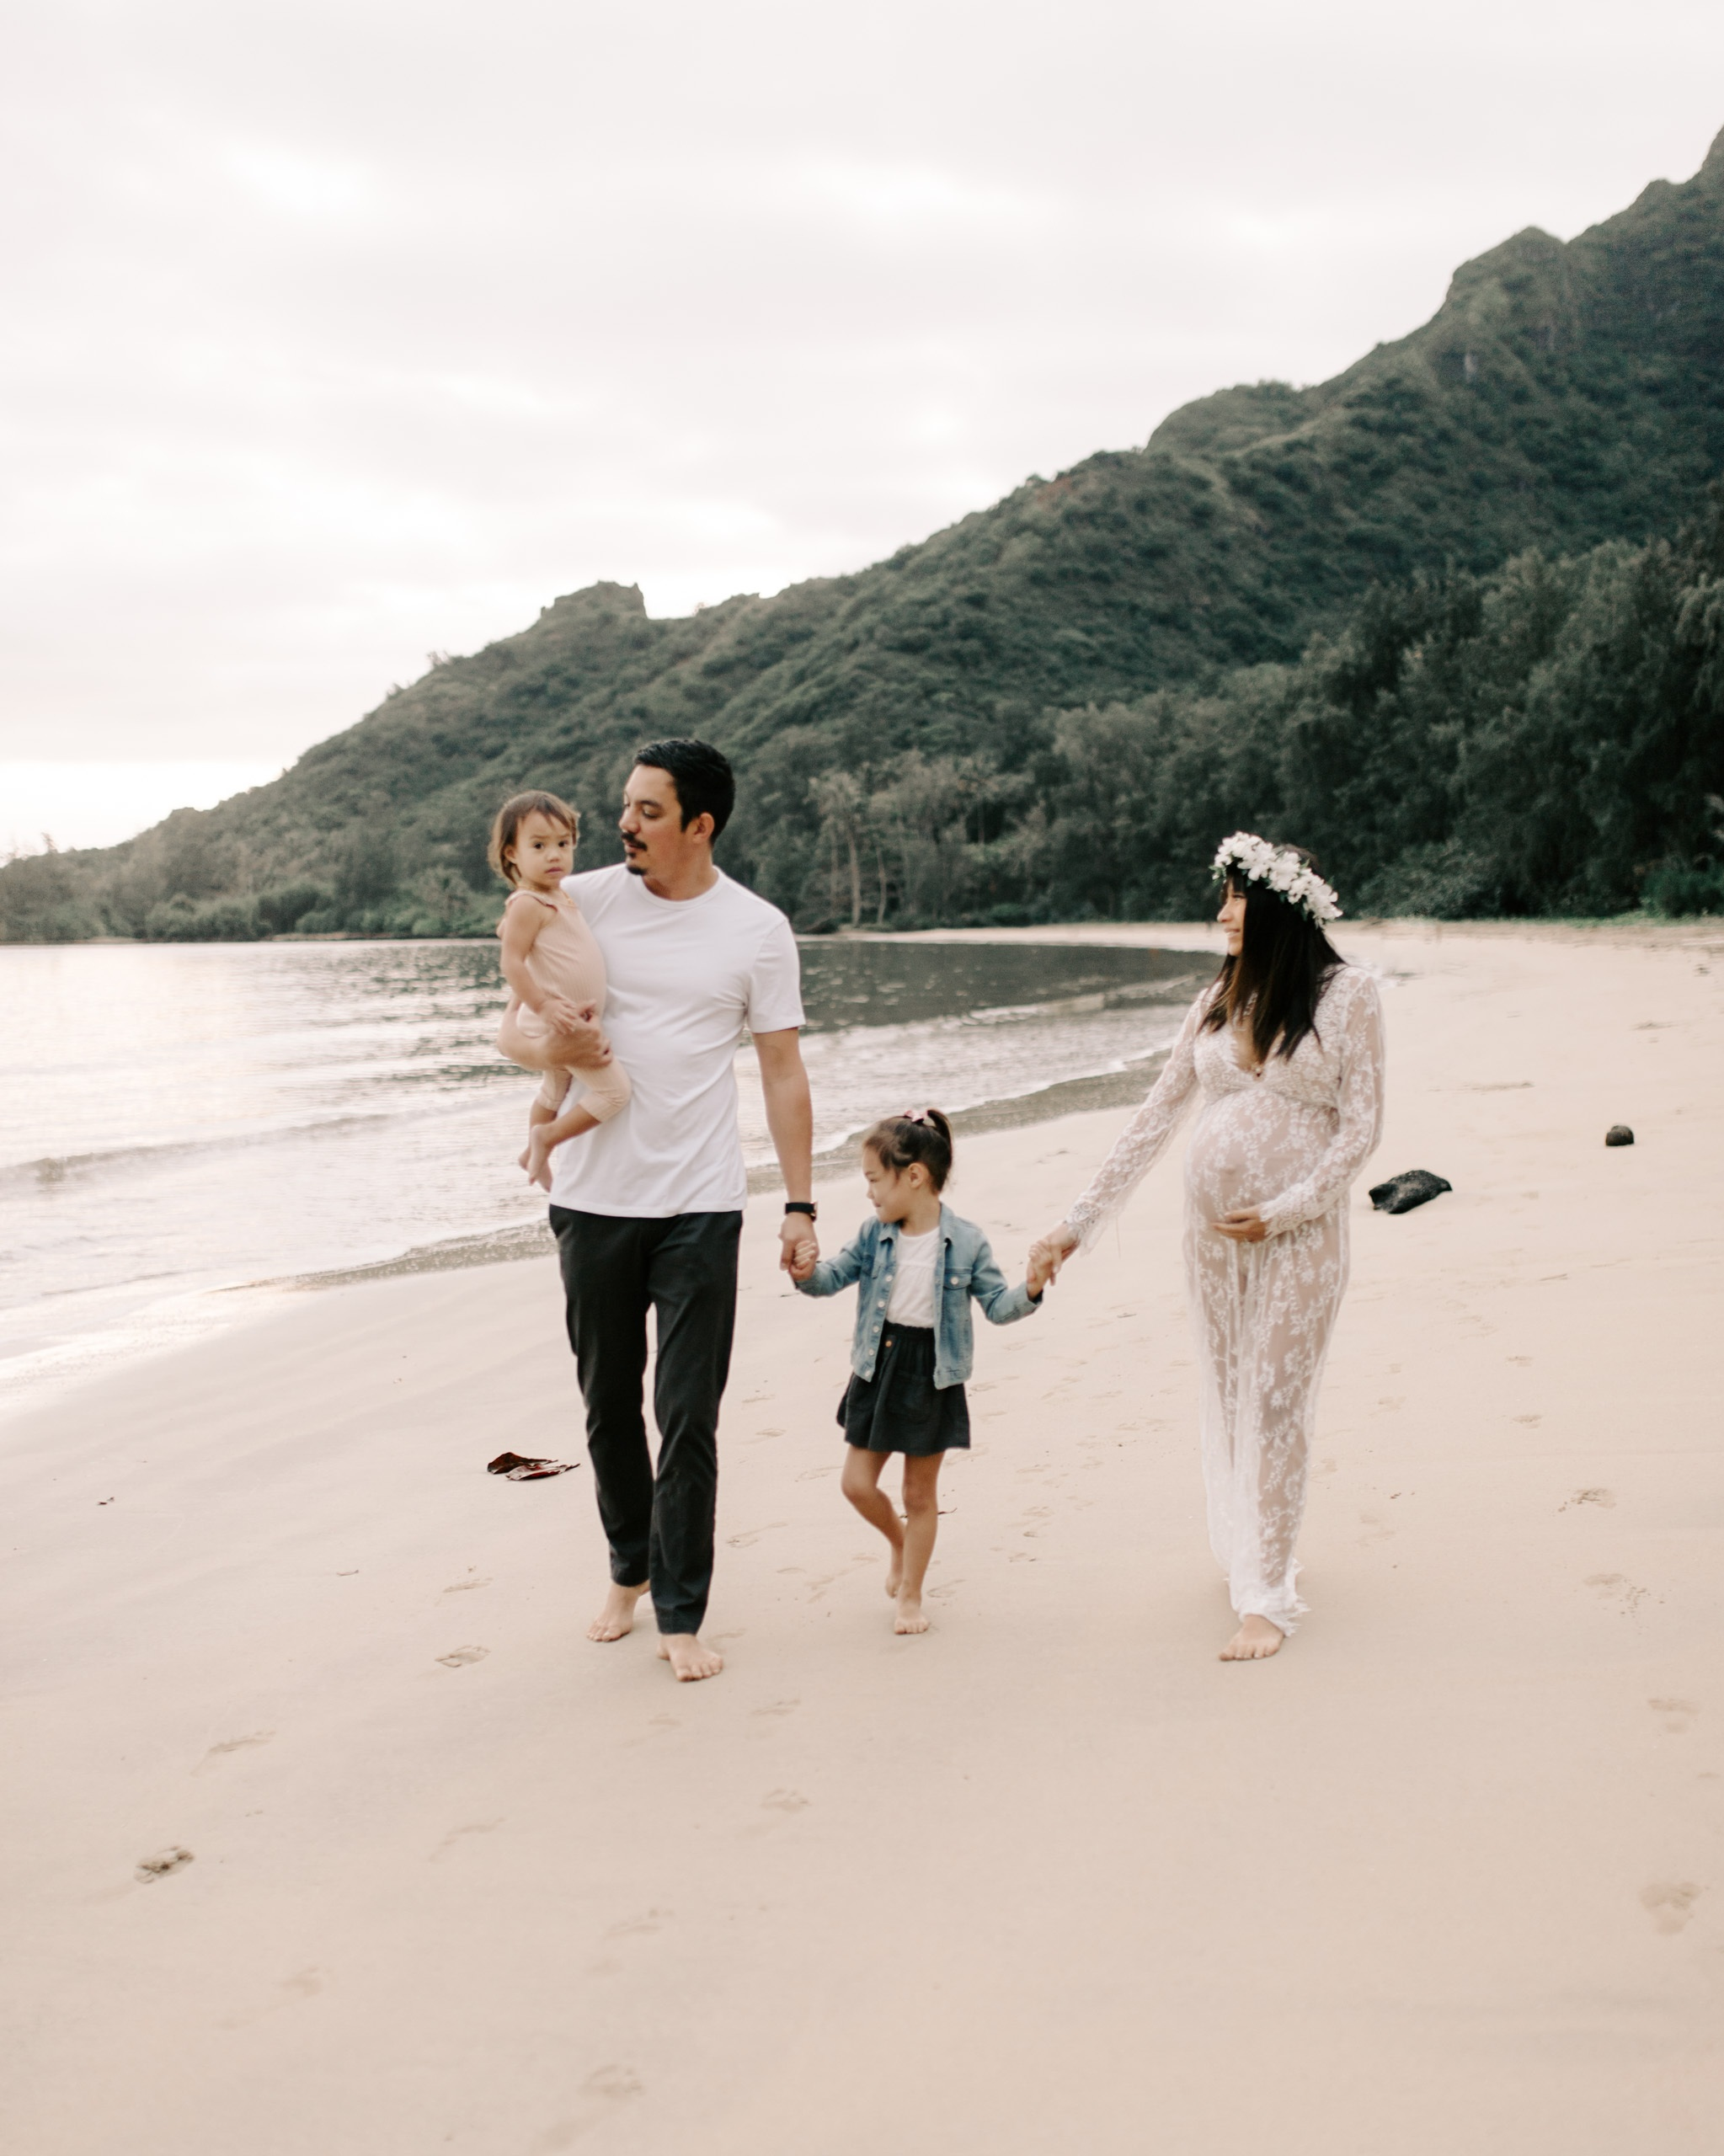 Whimsical+Kahana+Bay+Maternity+Session+by+Hawaii+Family+Photographer+Desiree+Leilani